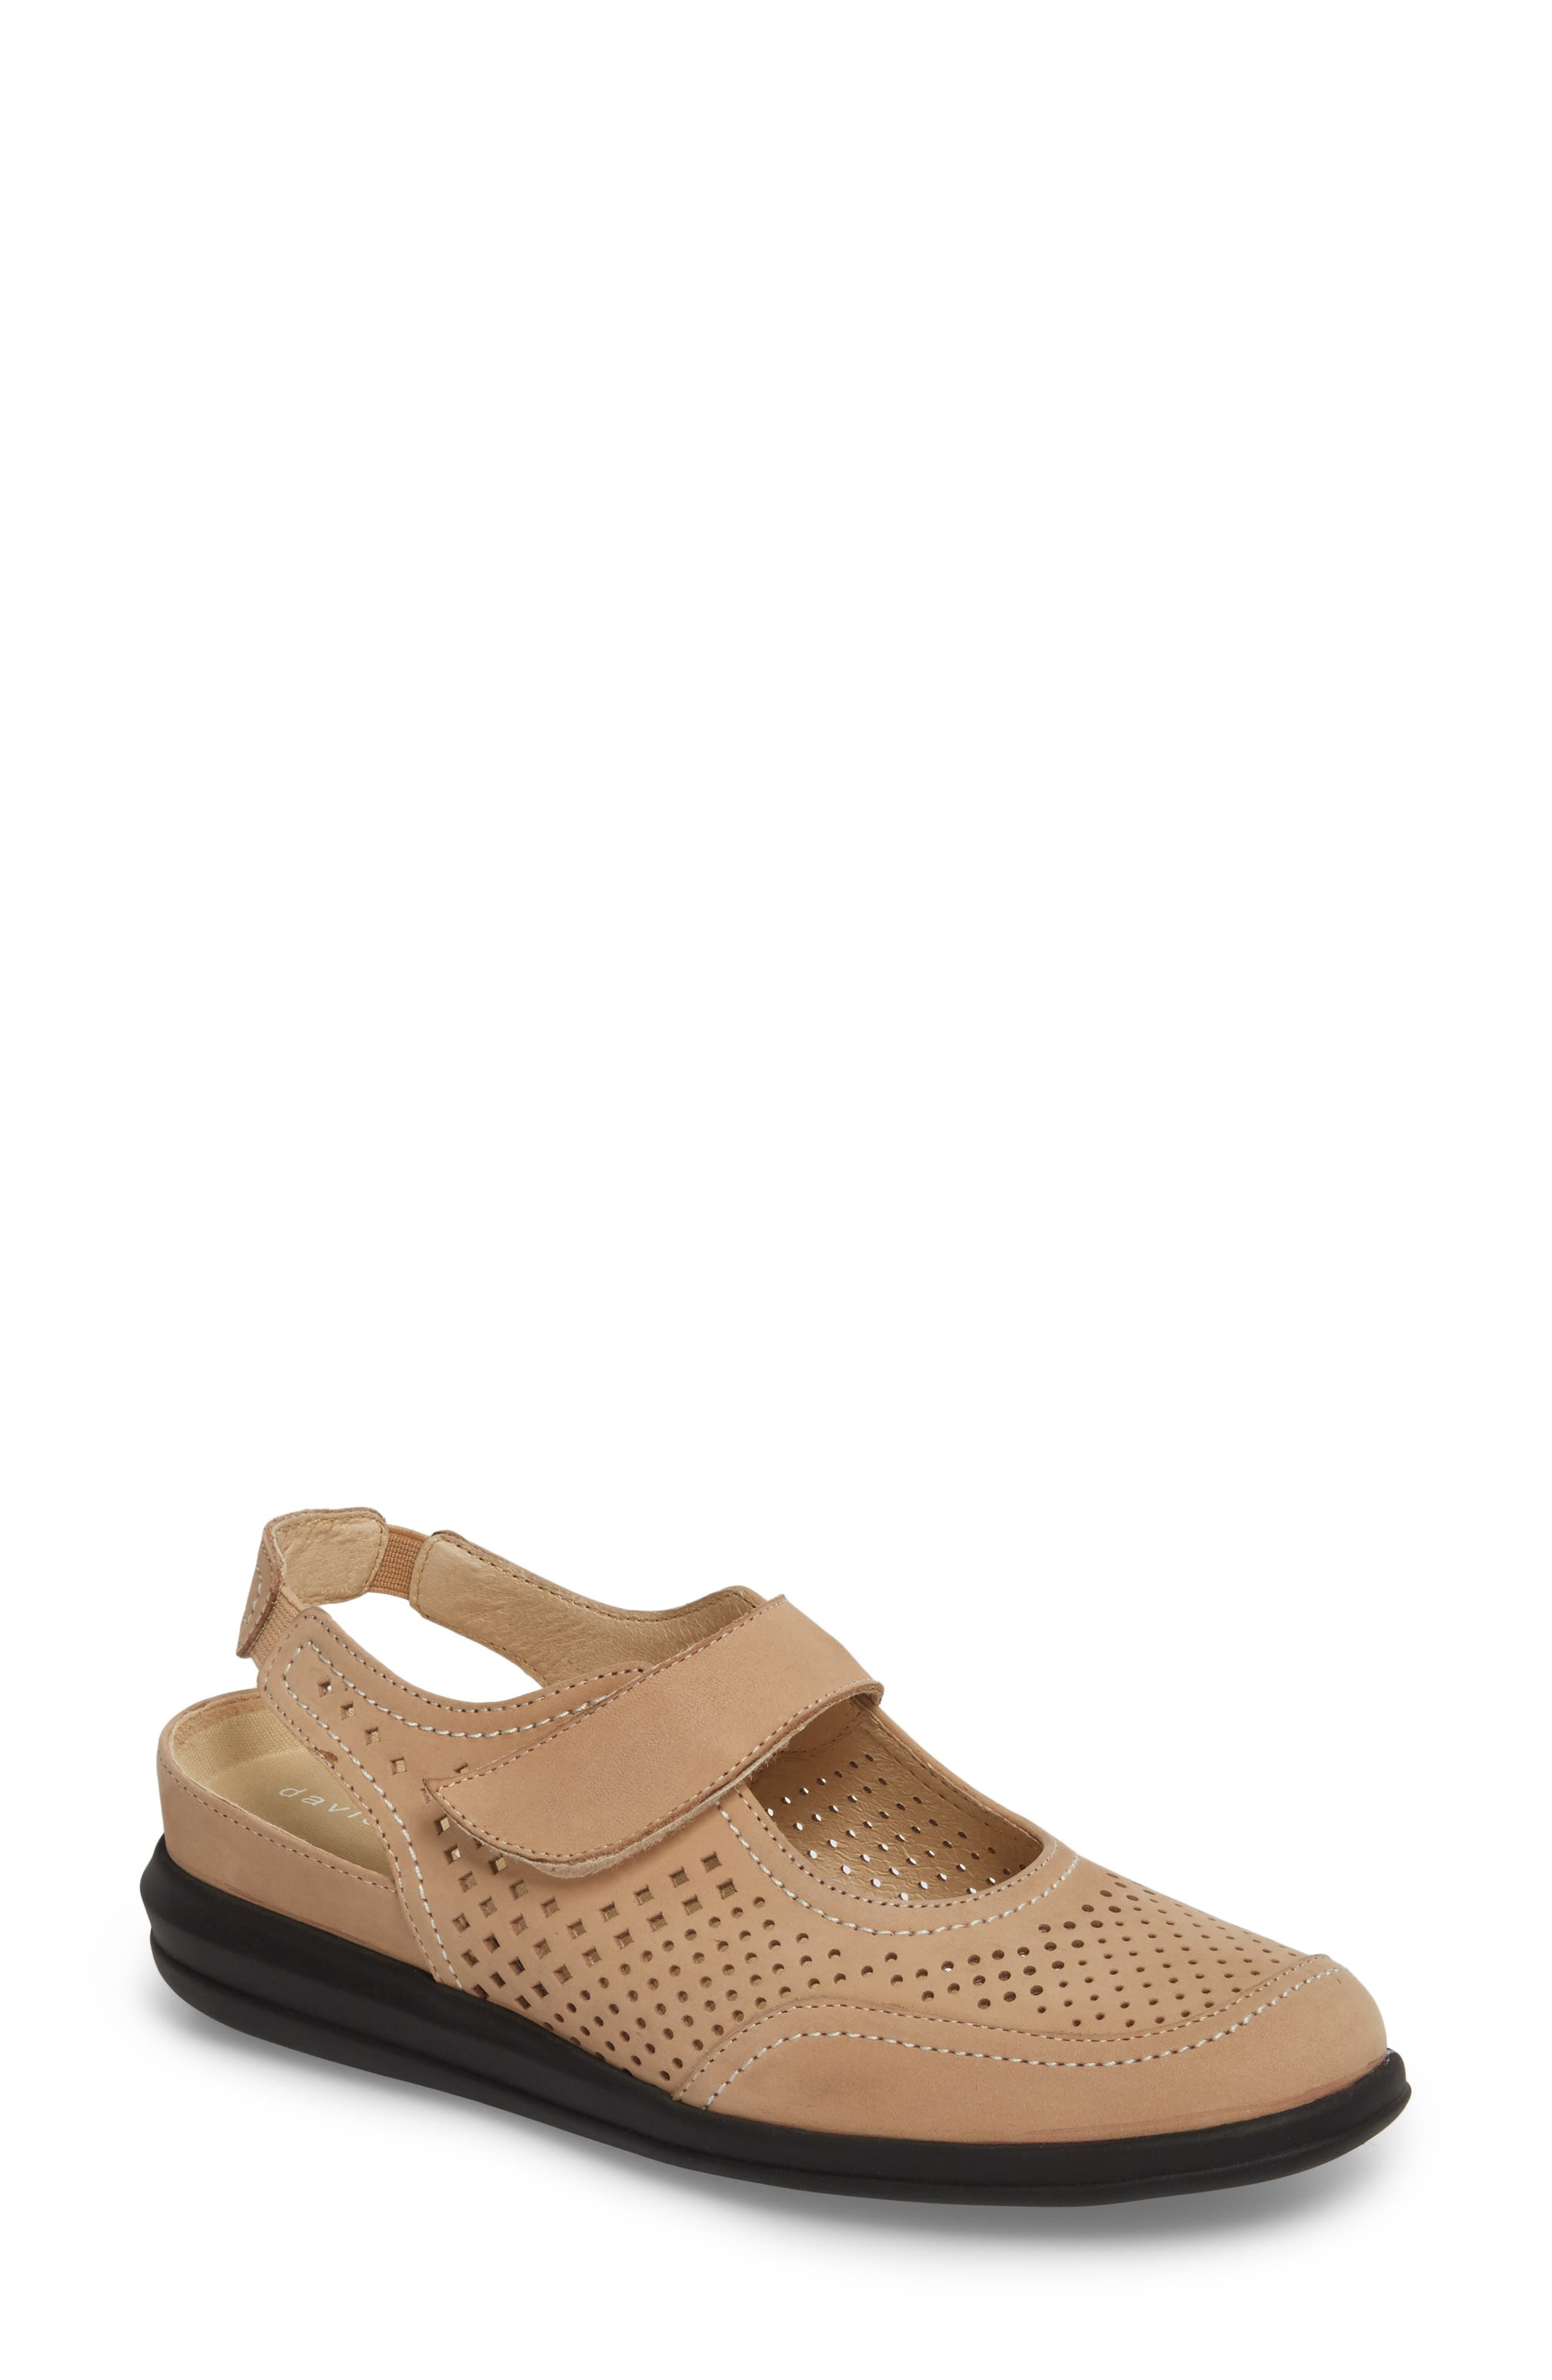 Clever Slingback Sneaker,                             Main thumbnail 1, color,                             Sand Nubuck